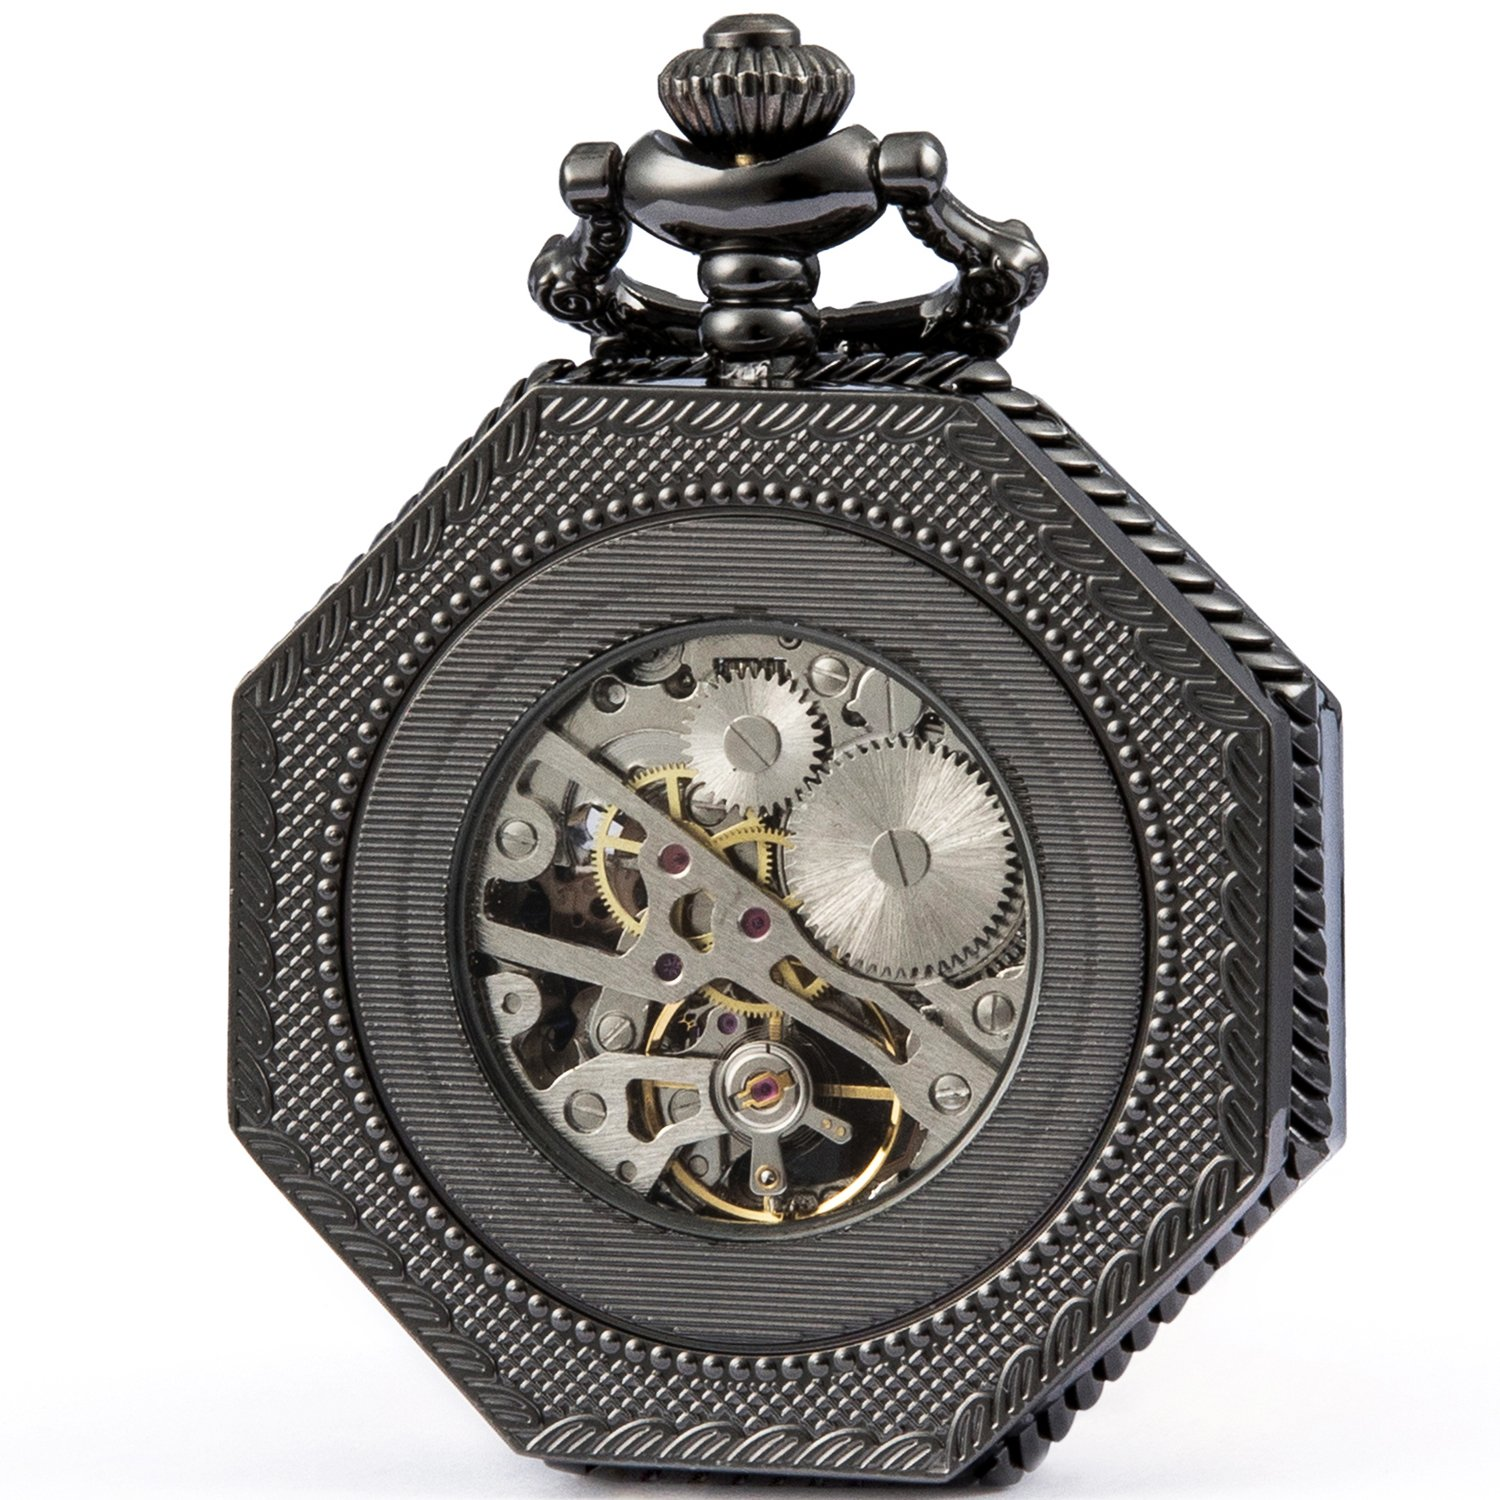 SEWOR Octagon Old School Style Hollow Roman Numerals Mechanical Hand Wind Pocket Watch (Black)